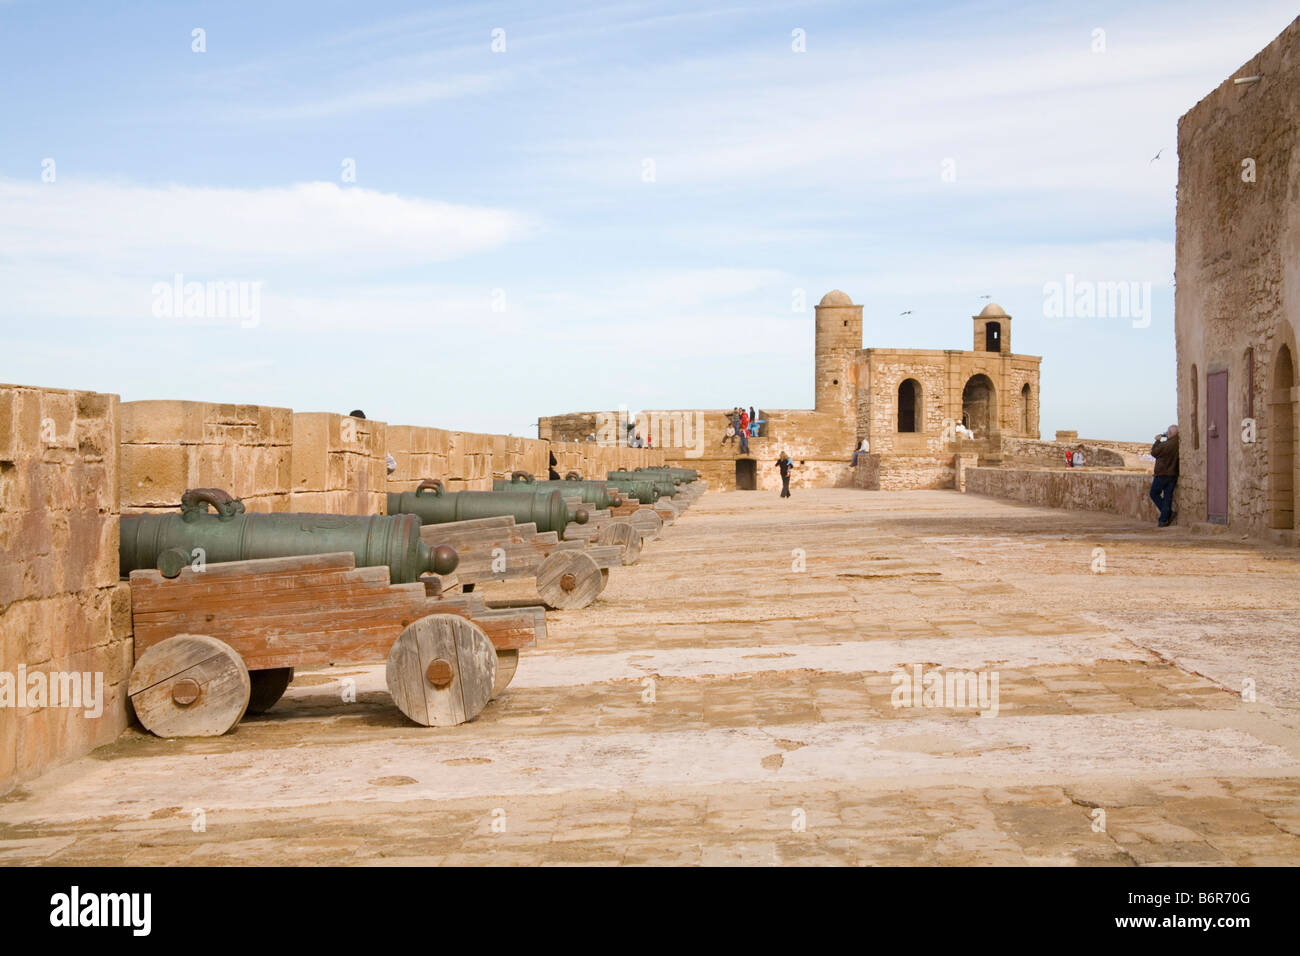 Essaouira Morocco North Africa December Looking along the old city ramparts with 17thc Spanish cannons - Stock Image